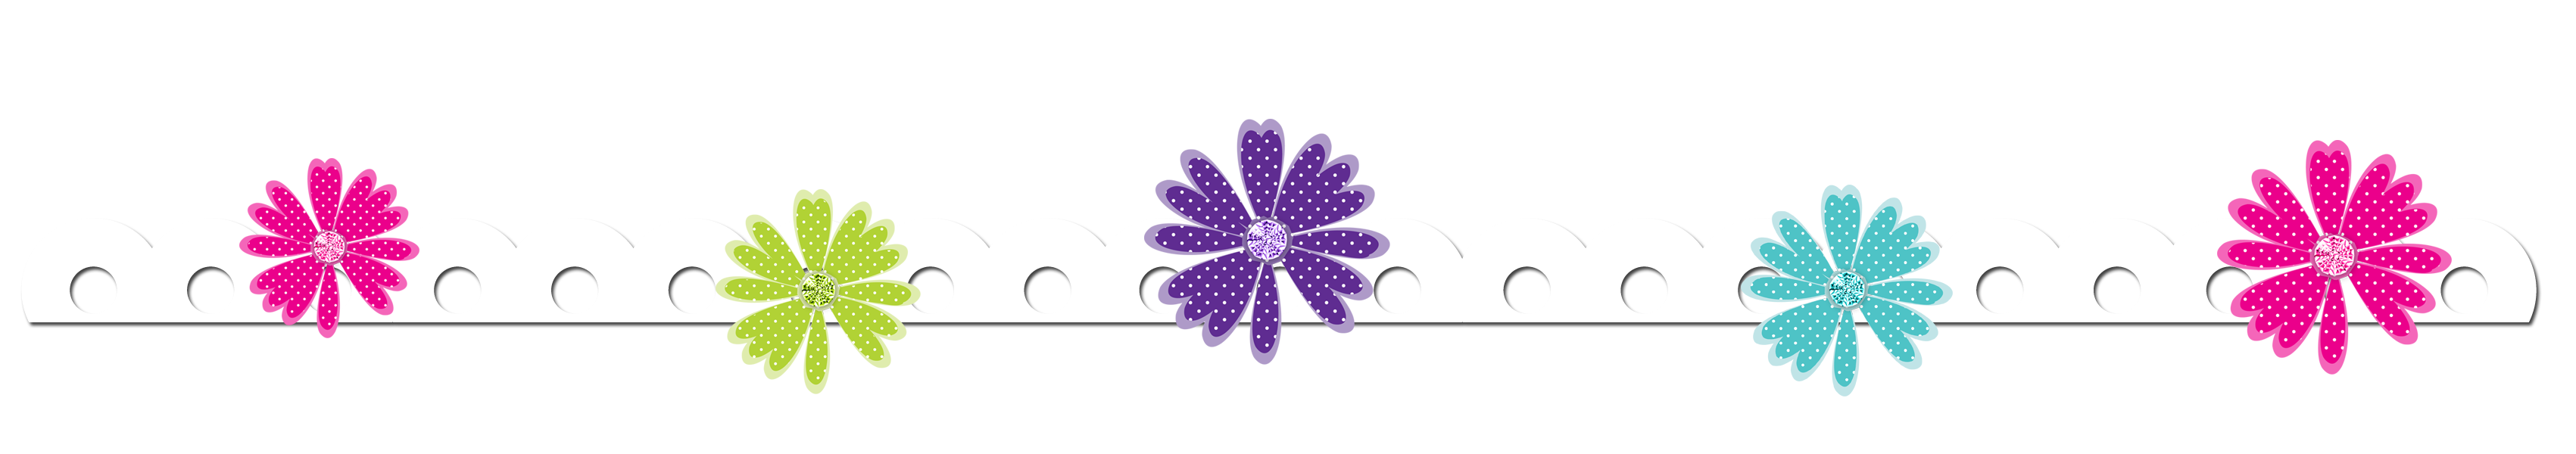 Dot clipart one. Flower row border